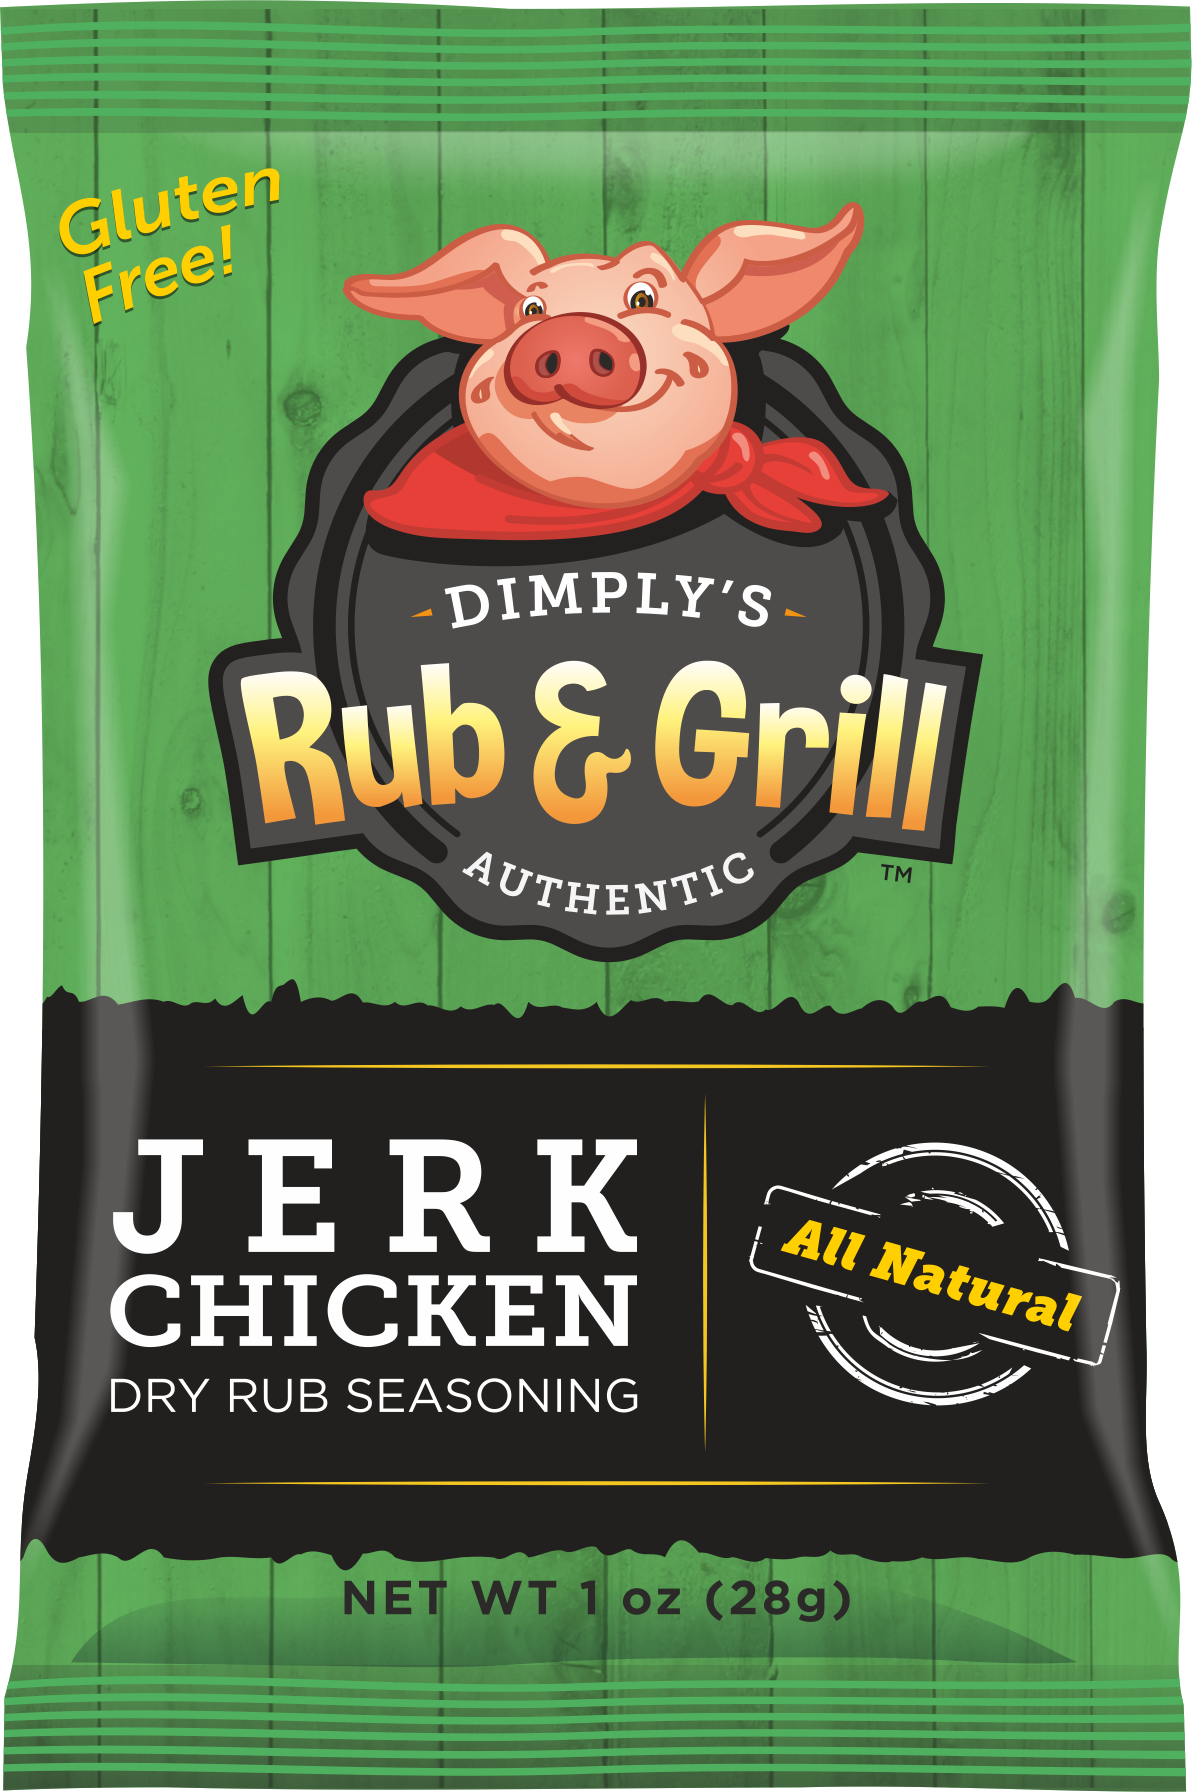 Jerk Chicken Dry Rub Seasoning